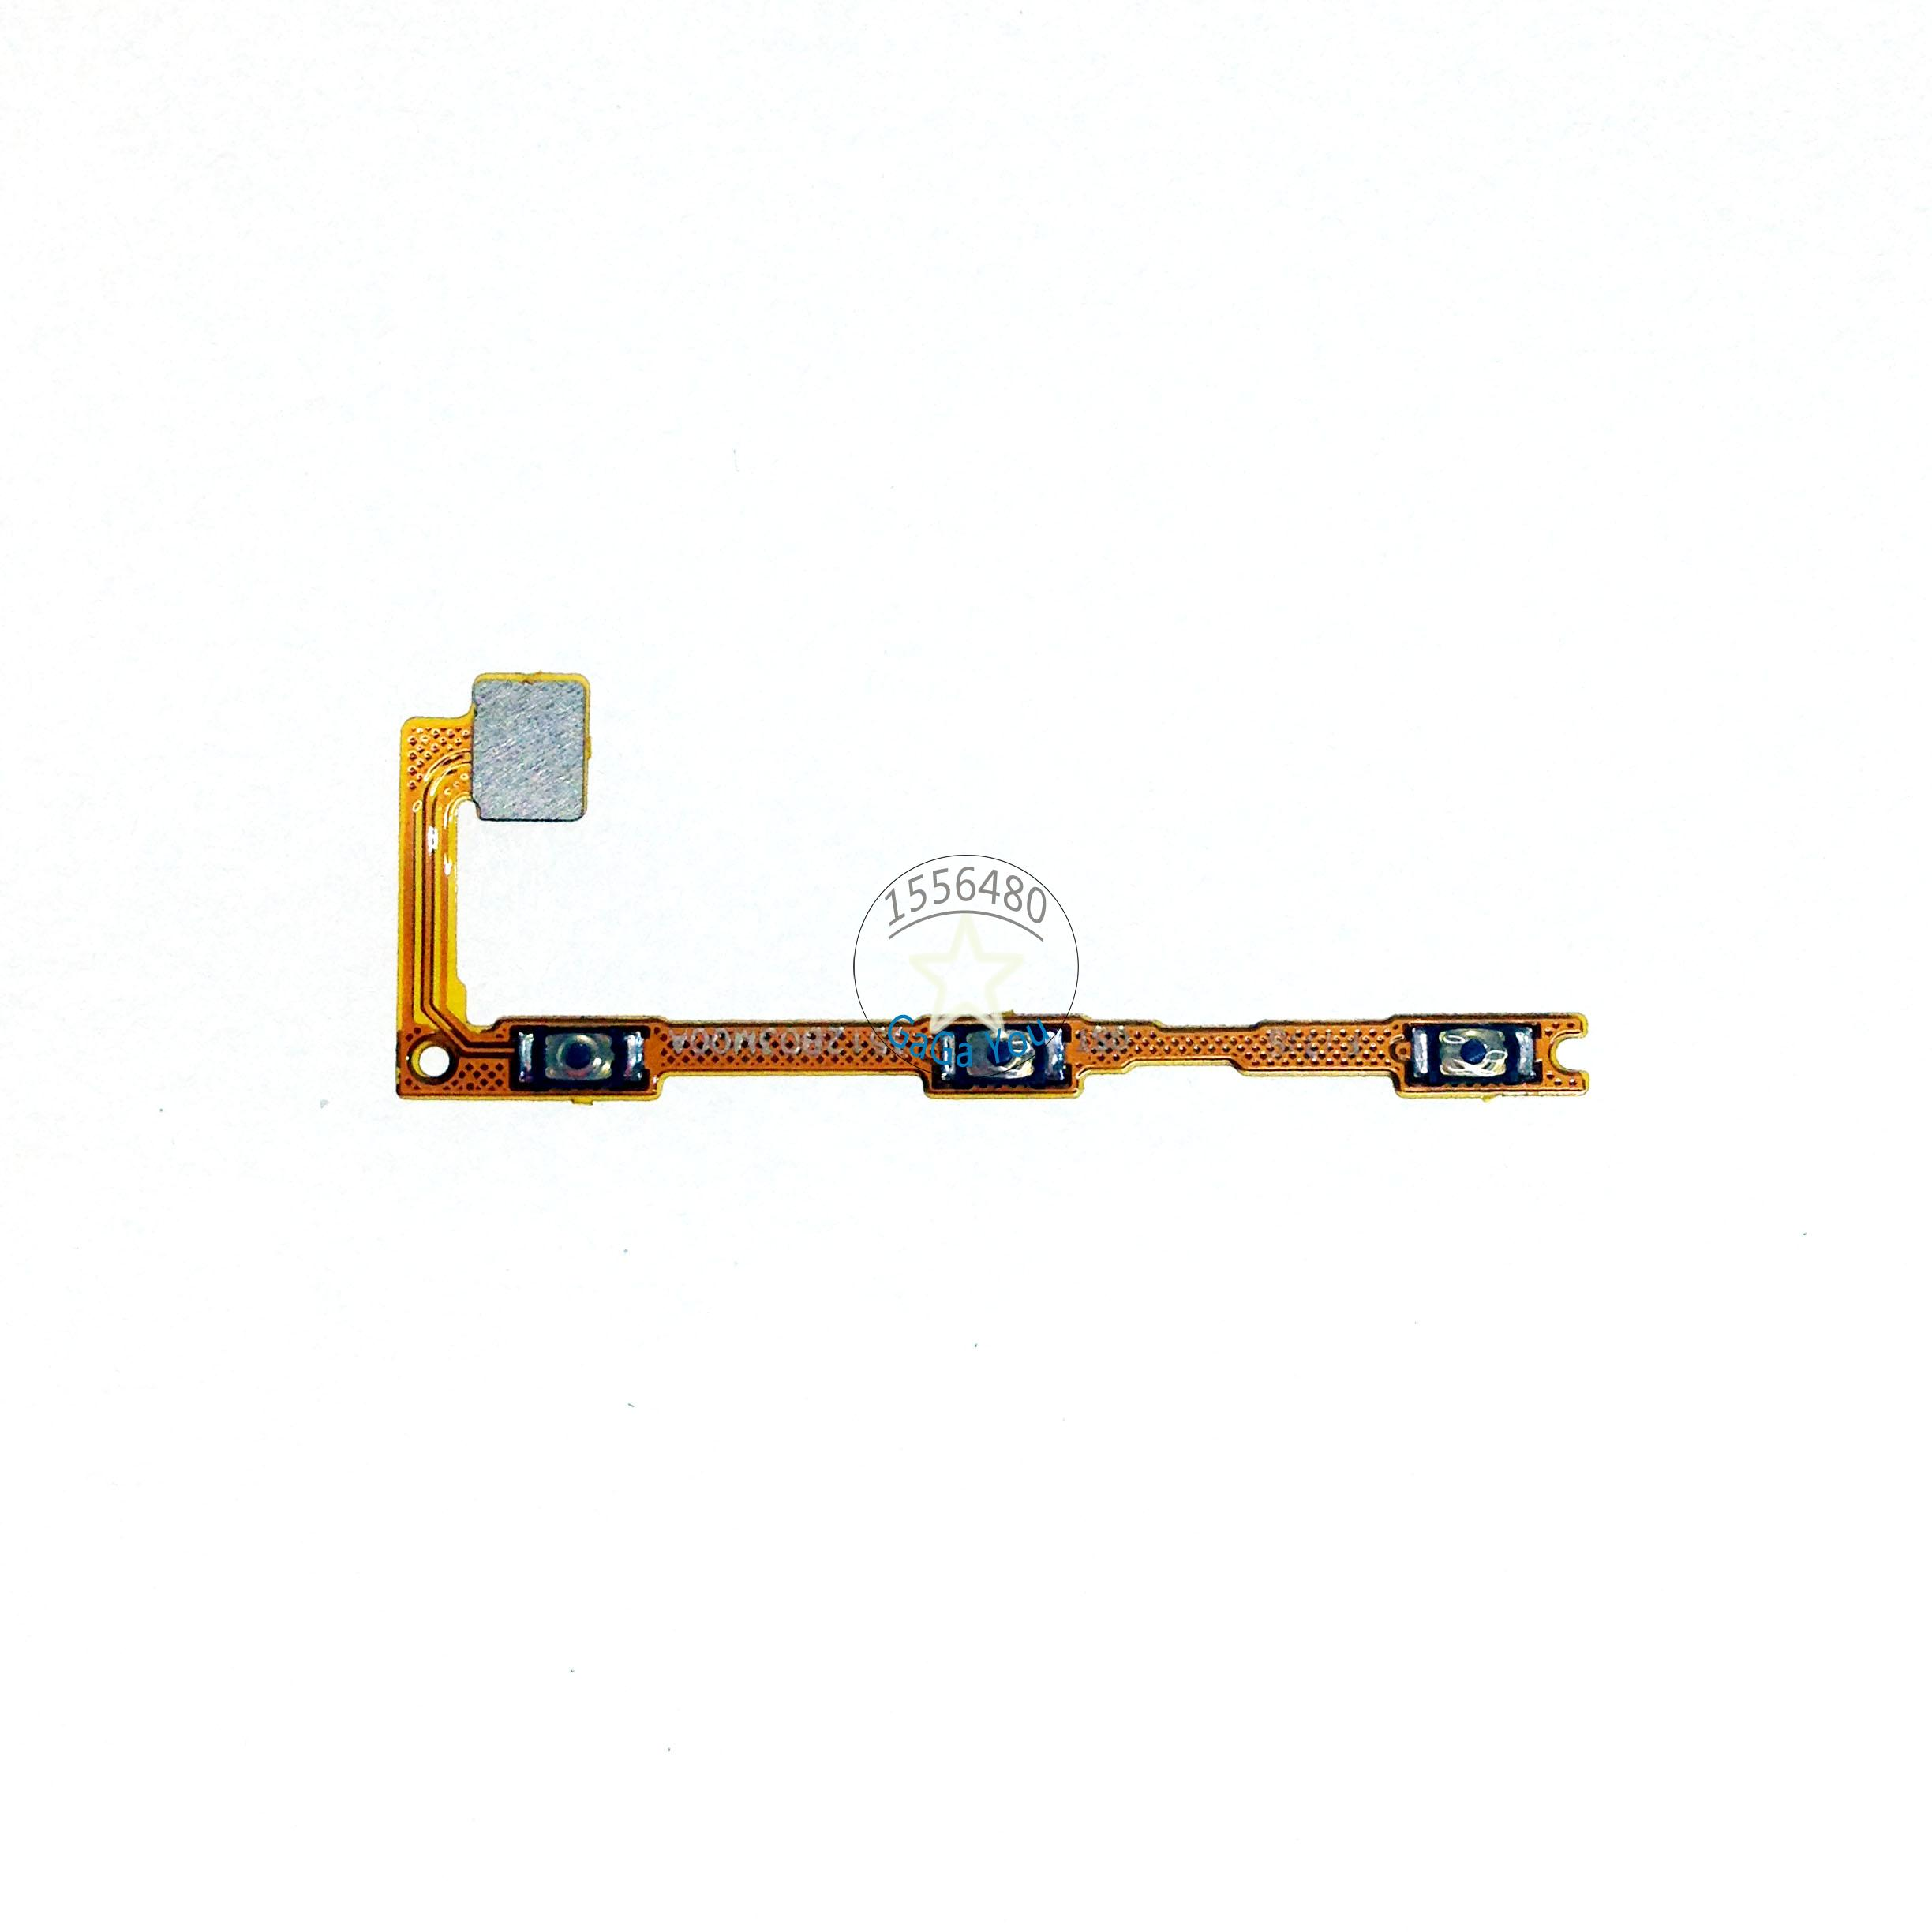 Original Power On Off Button Switch Flex Cable For Xiaomi Mi Max Switch On Off Volume Switch Flex Cable Replacement Parts